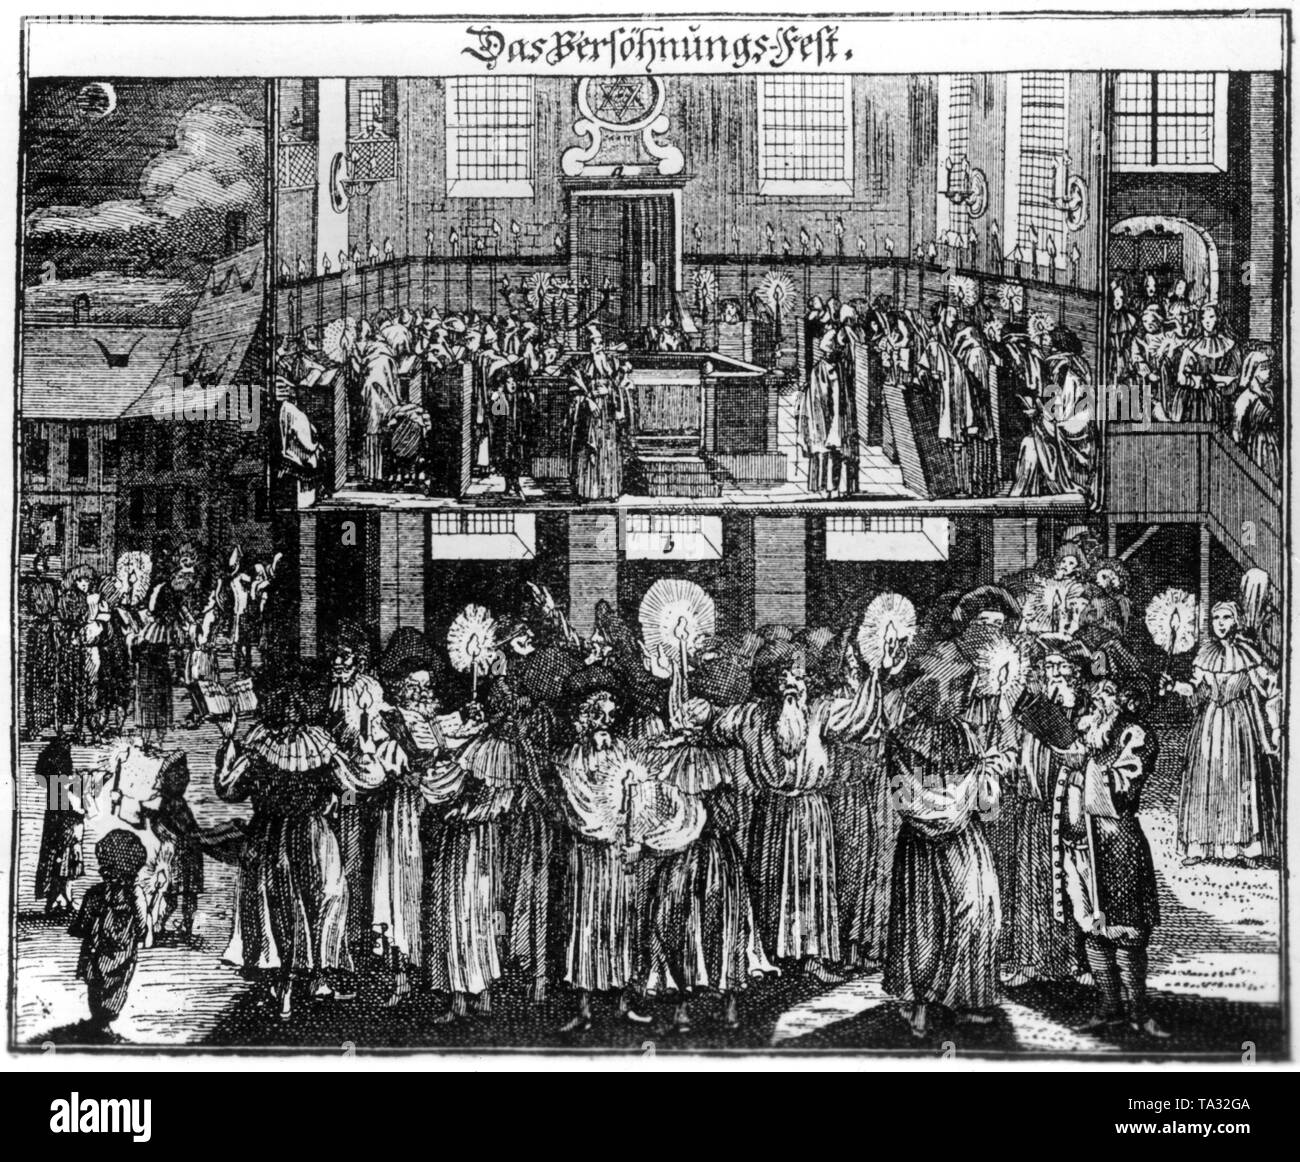 Das Versoehnungsfest (Day of Atonement) from the collection Juedisches Ceremoniell (Jewish Ceremonies) by Paul Christian Kirchner after a copper engraving by Johann Georg Puschner. - Stock Image